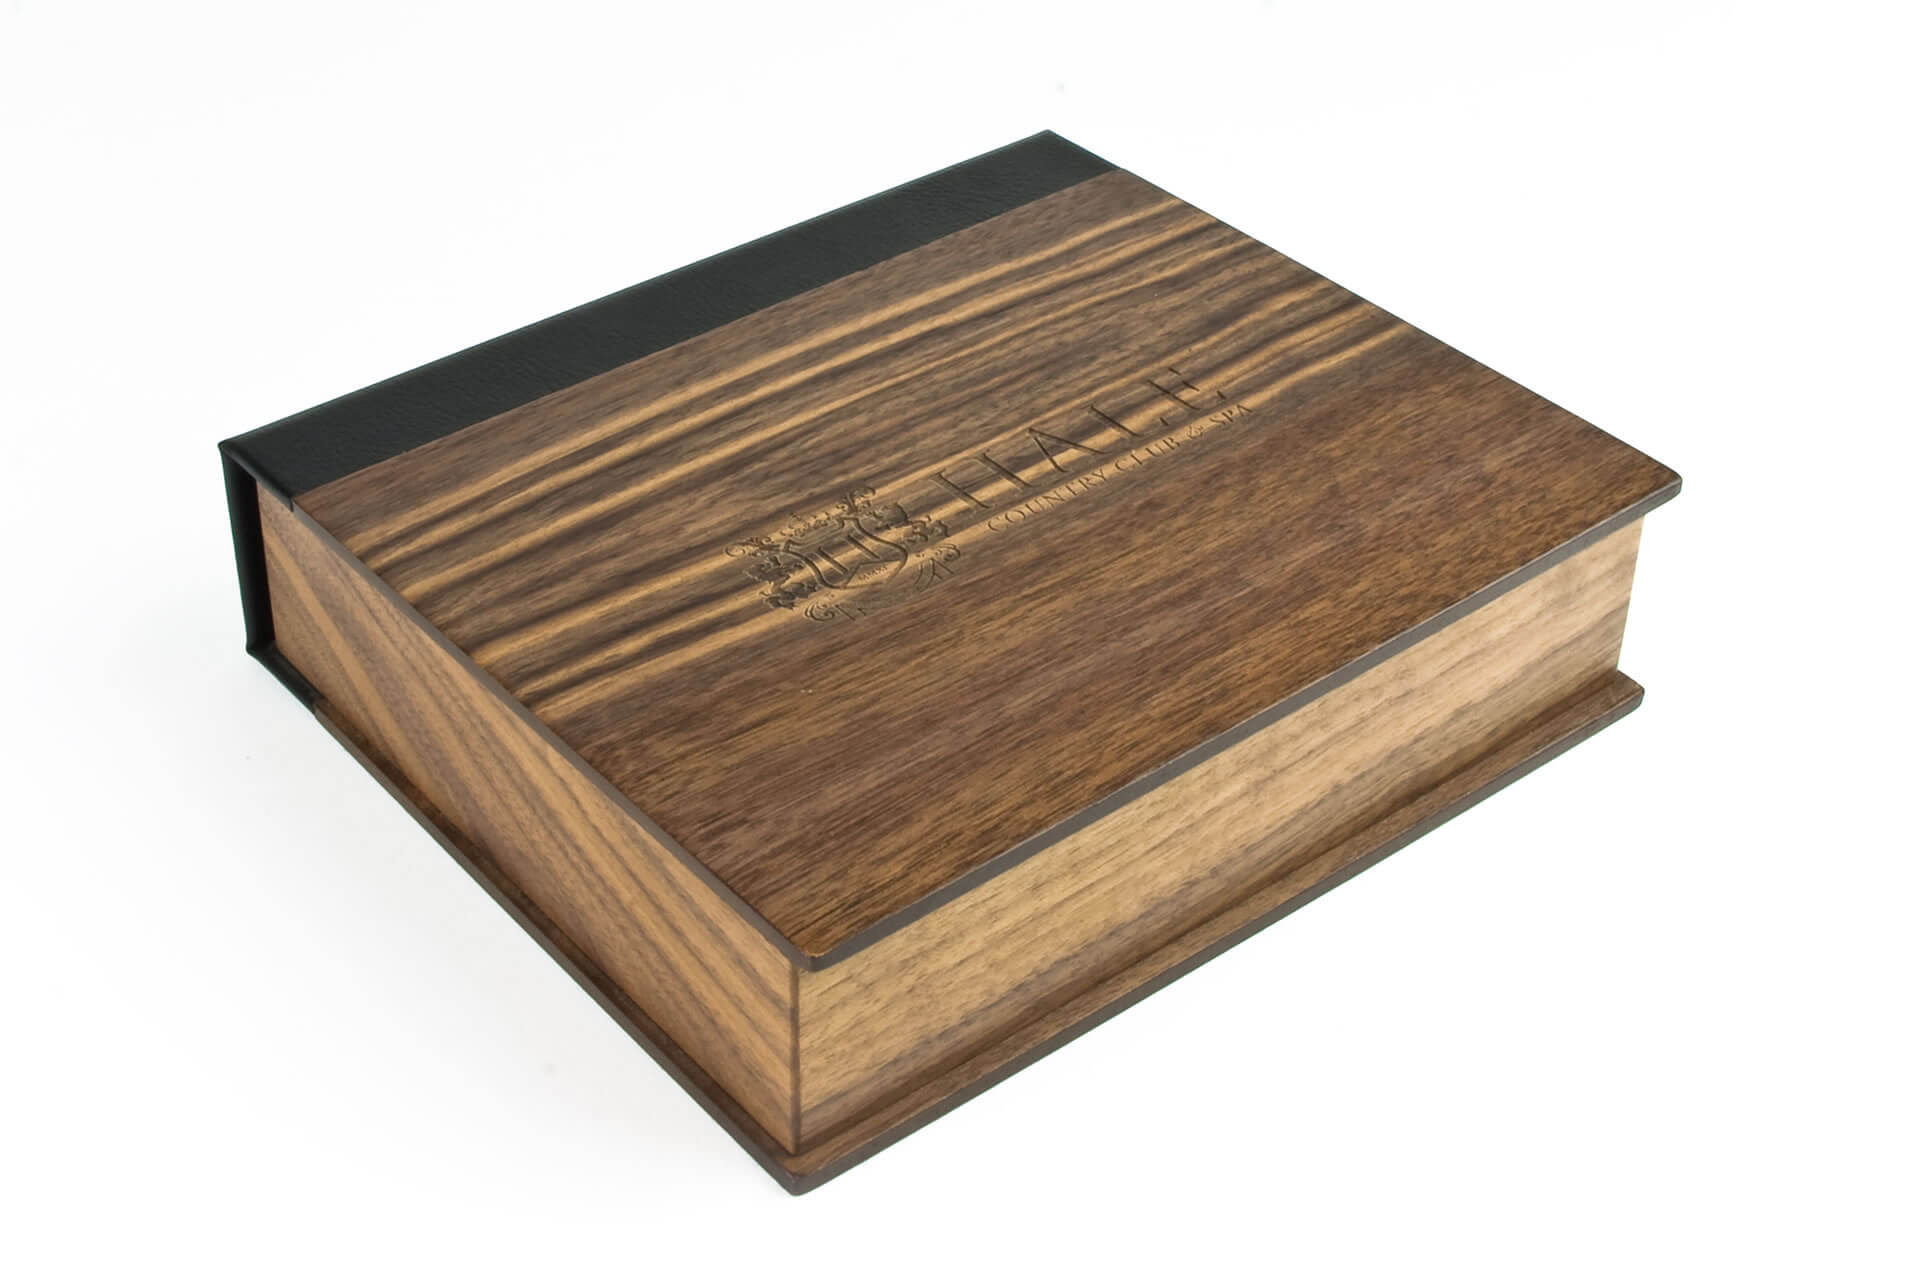 hale bespoke wooden folding lid presentation membership box closed lid detail